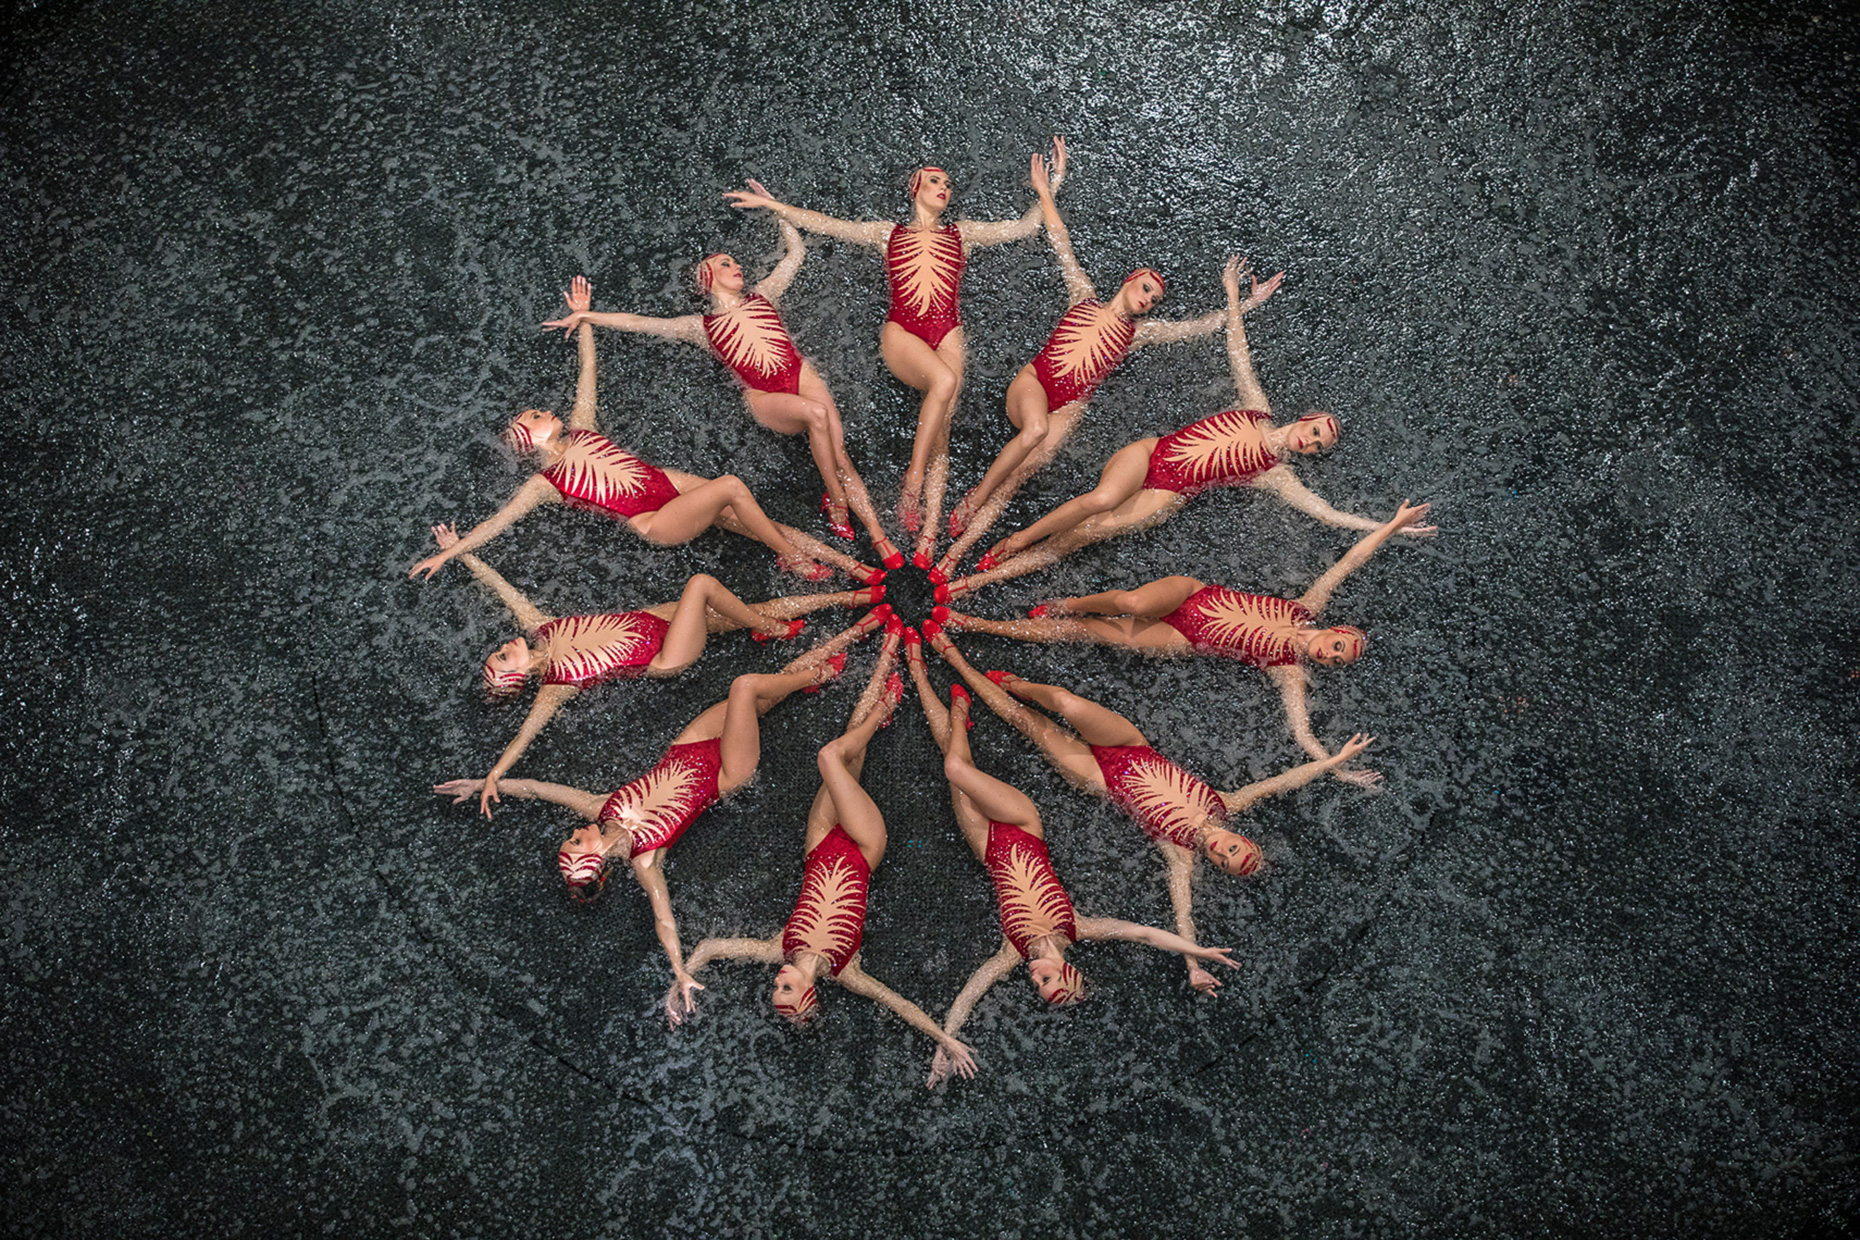 Synchronized swimmers on the stage forming a star. Le RÊVE the Dream Show at the Wynn Las Vegas. Advertising